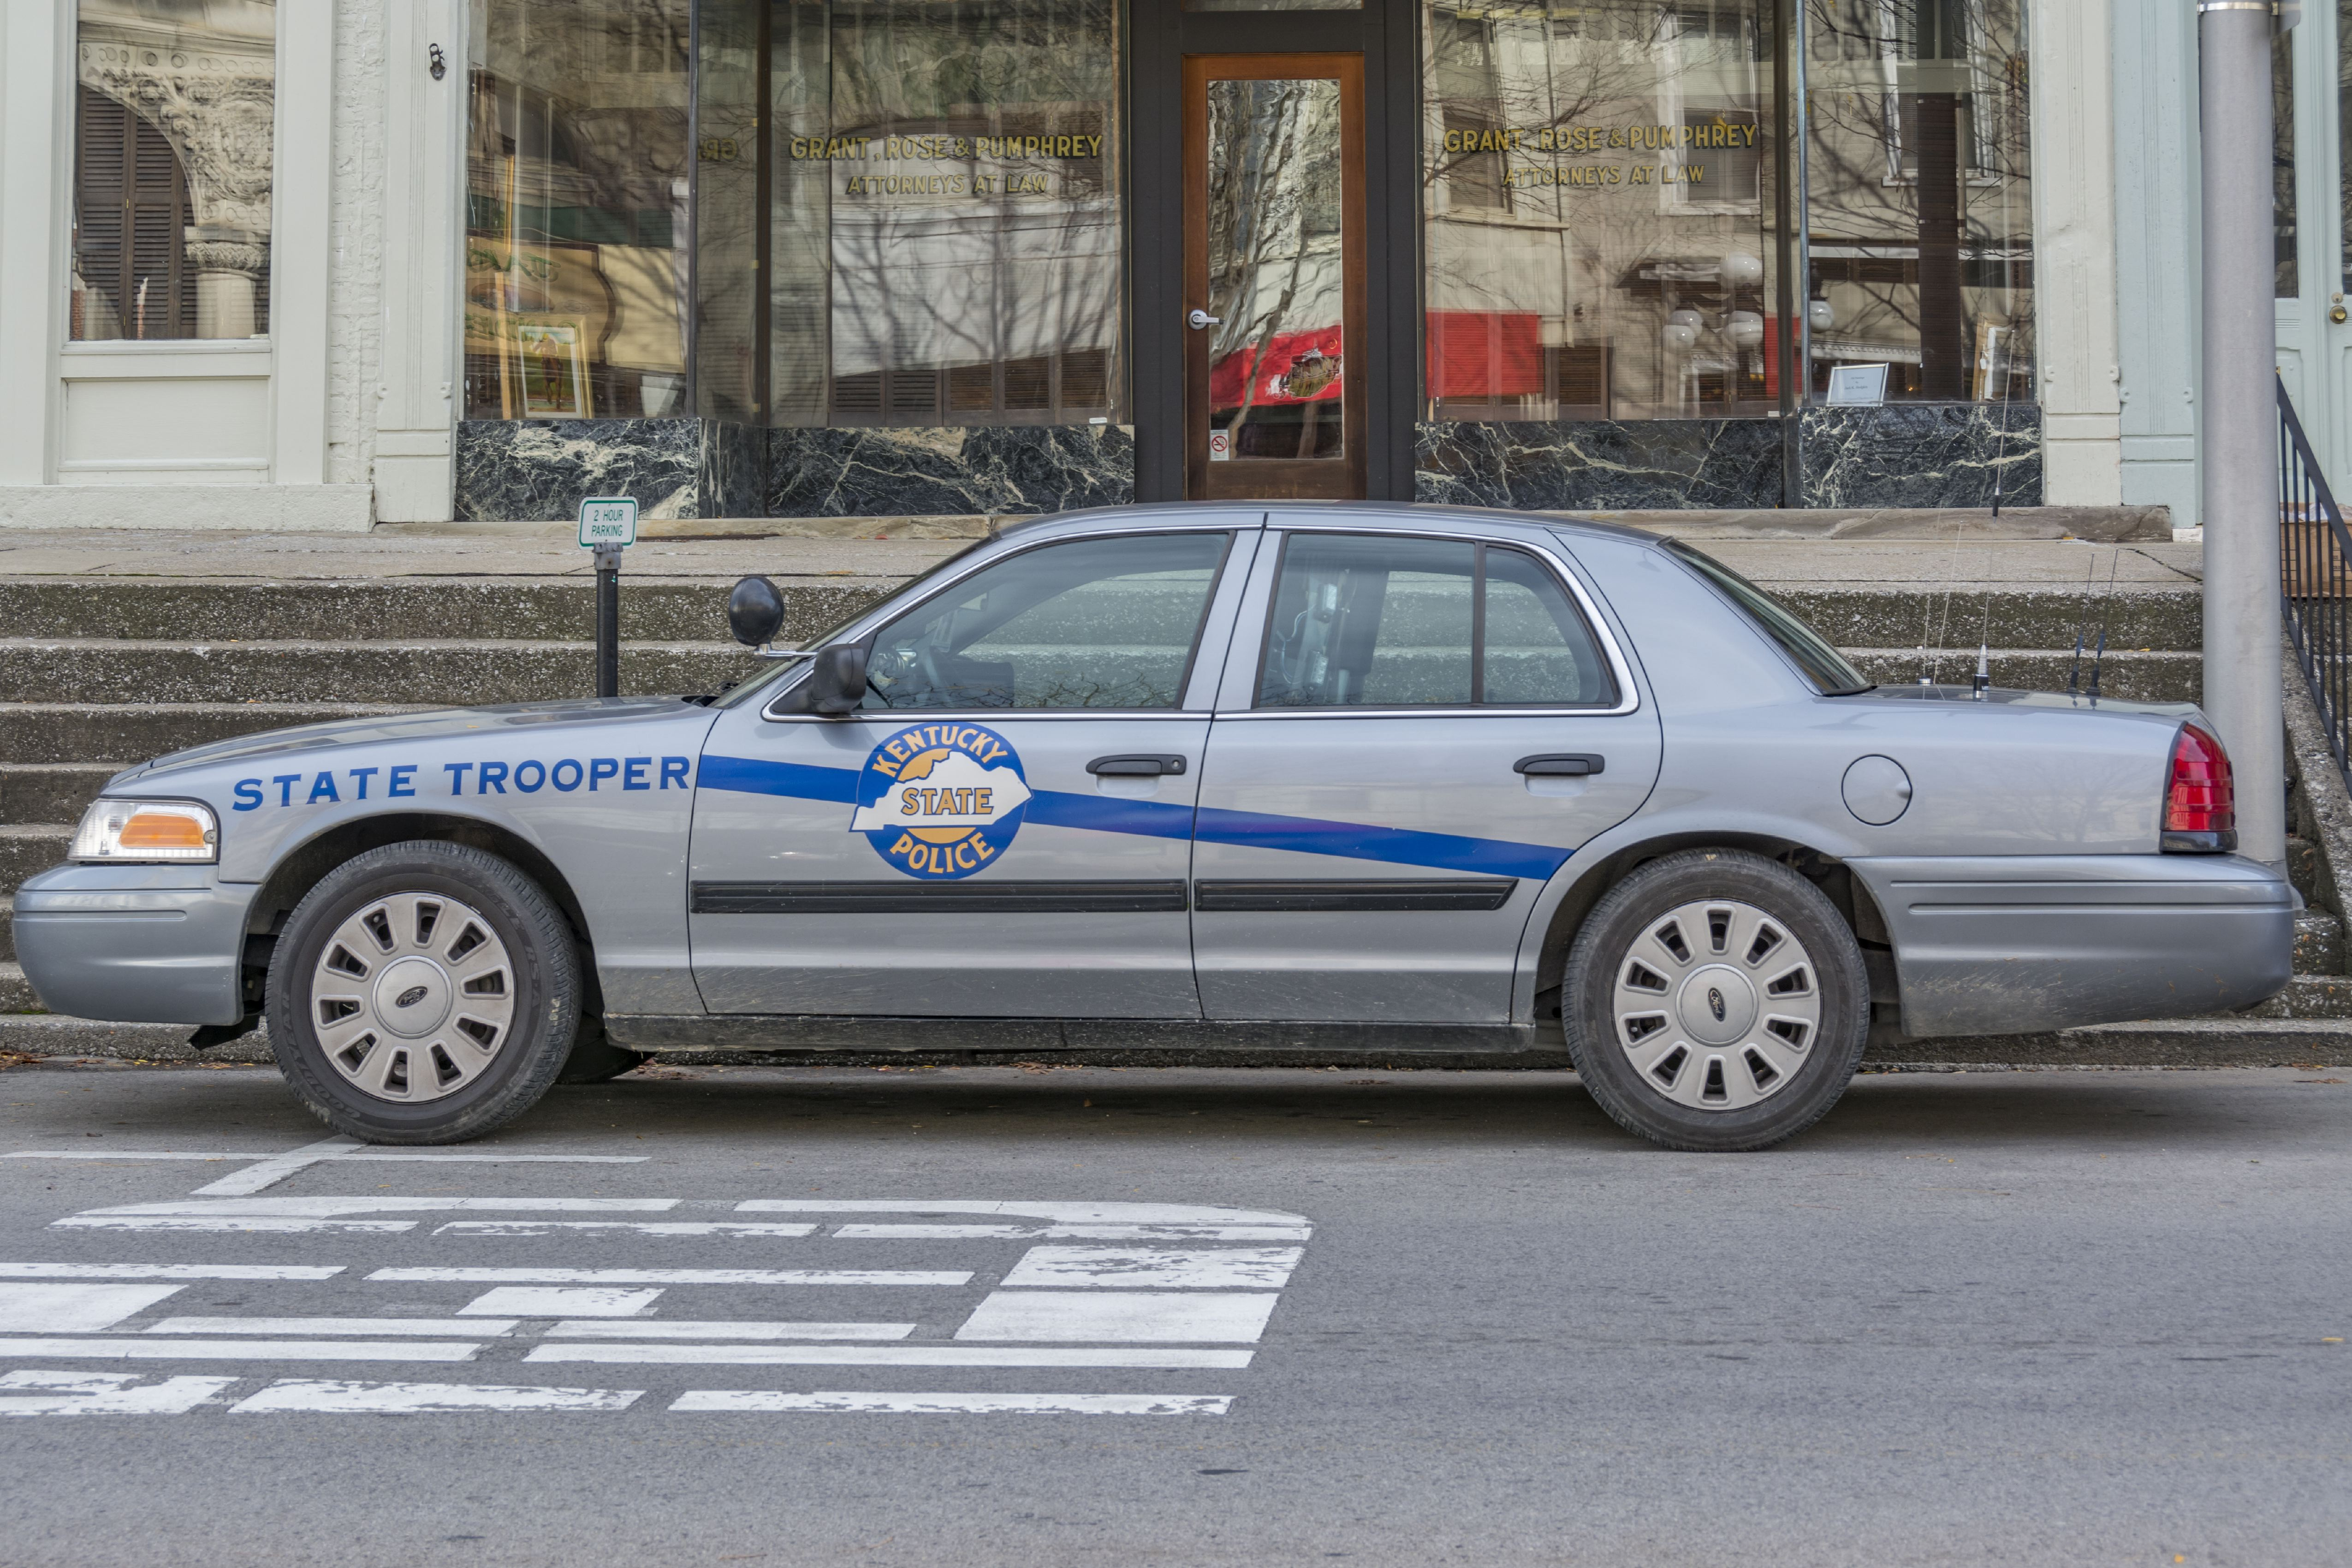 Kentucky State Trooper police car. (Photo by:  Education Images/UIG via Getty Images)